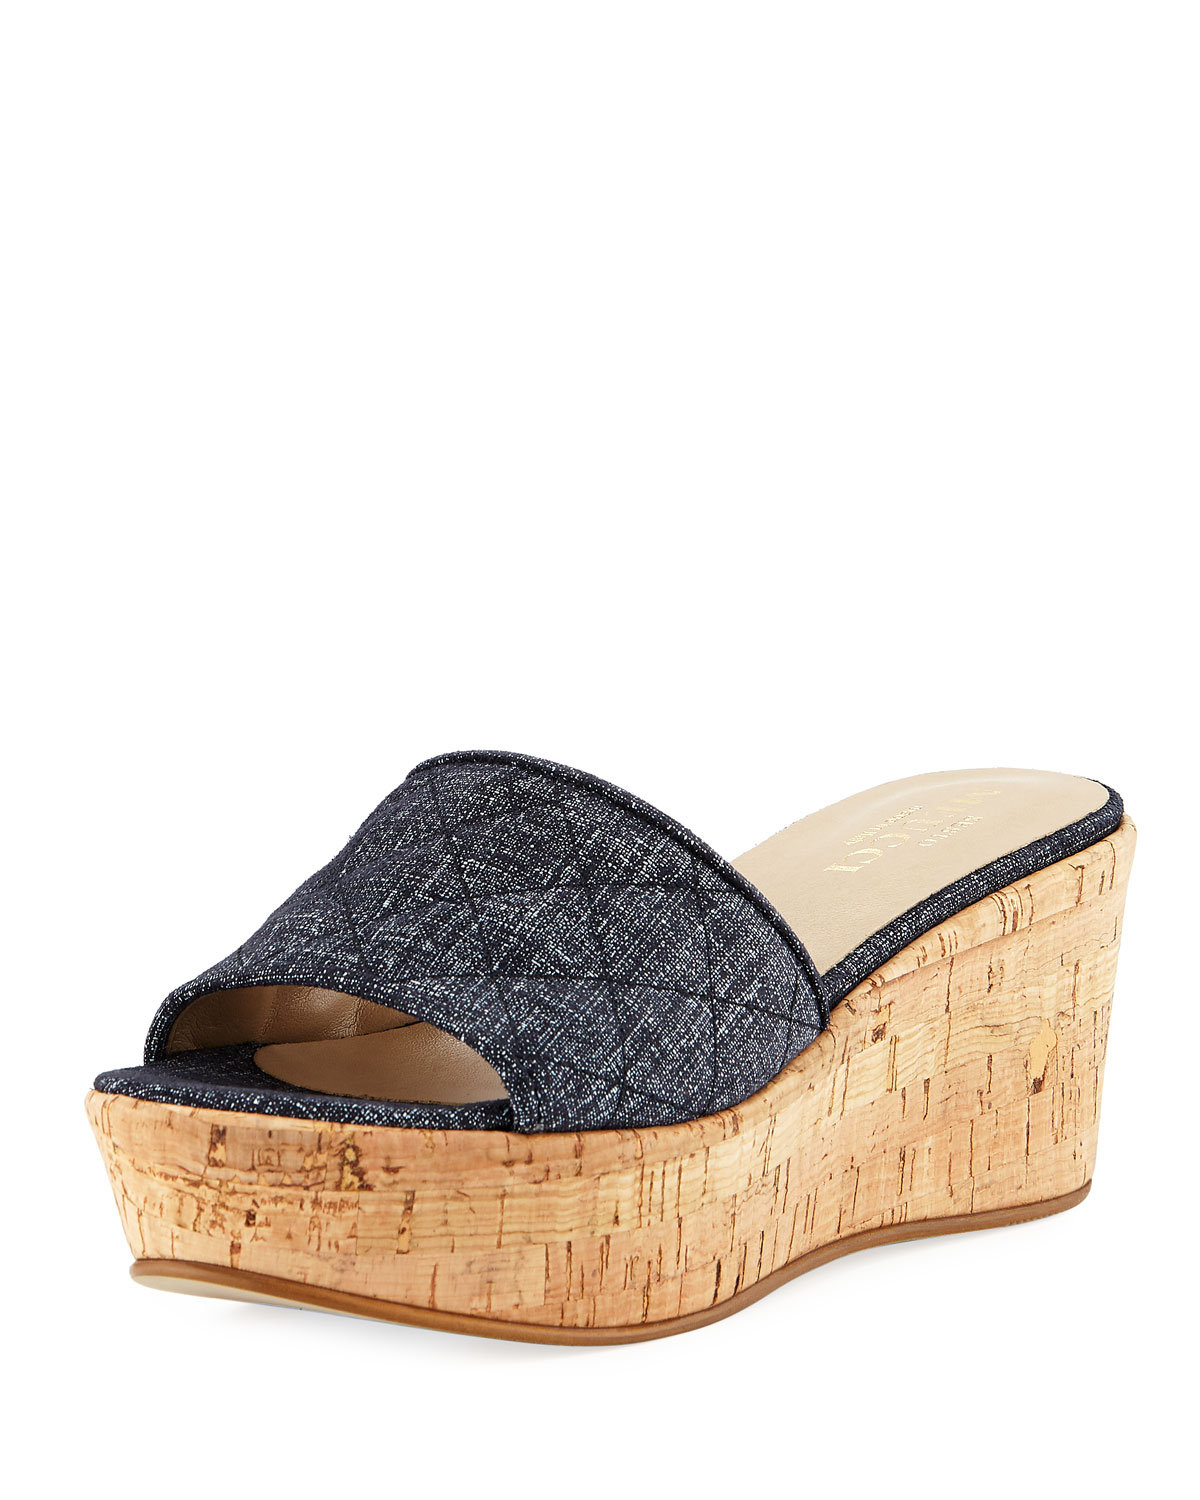 Sesto Meucci Tarie Quilted Denim Wedge Slide Sandal ct0a8z